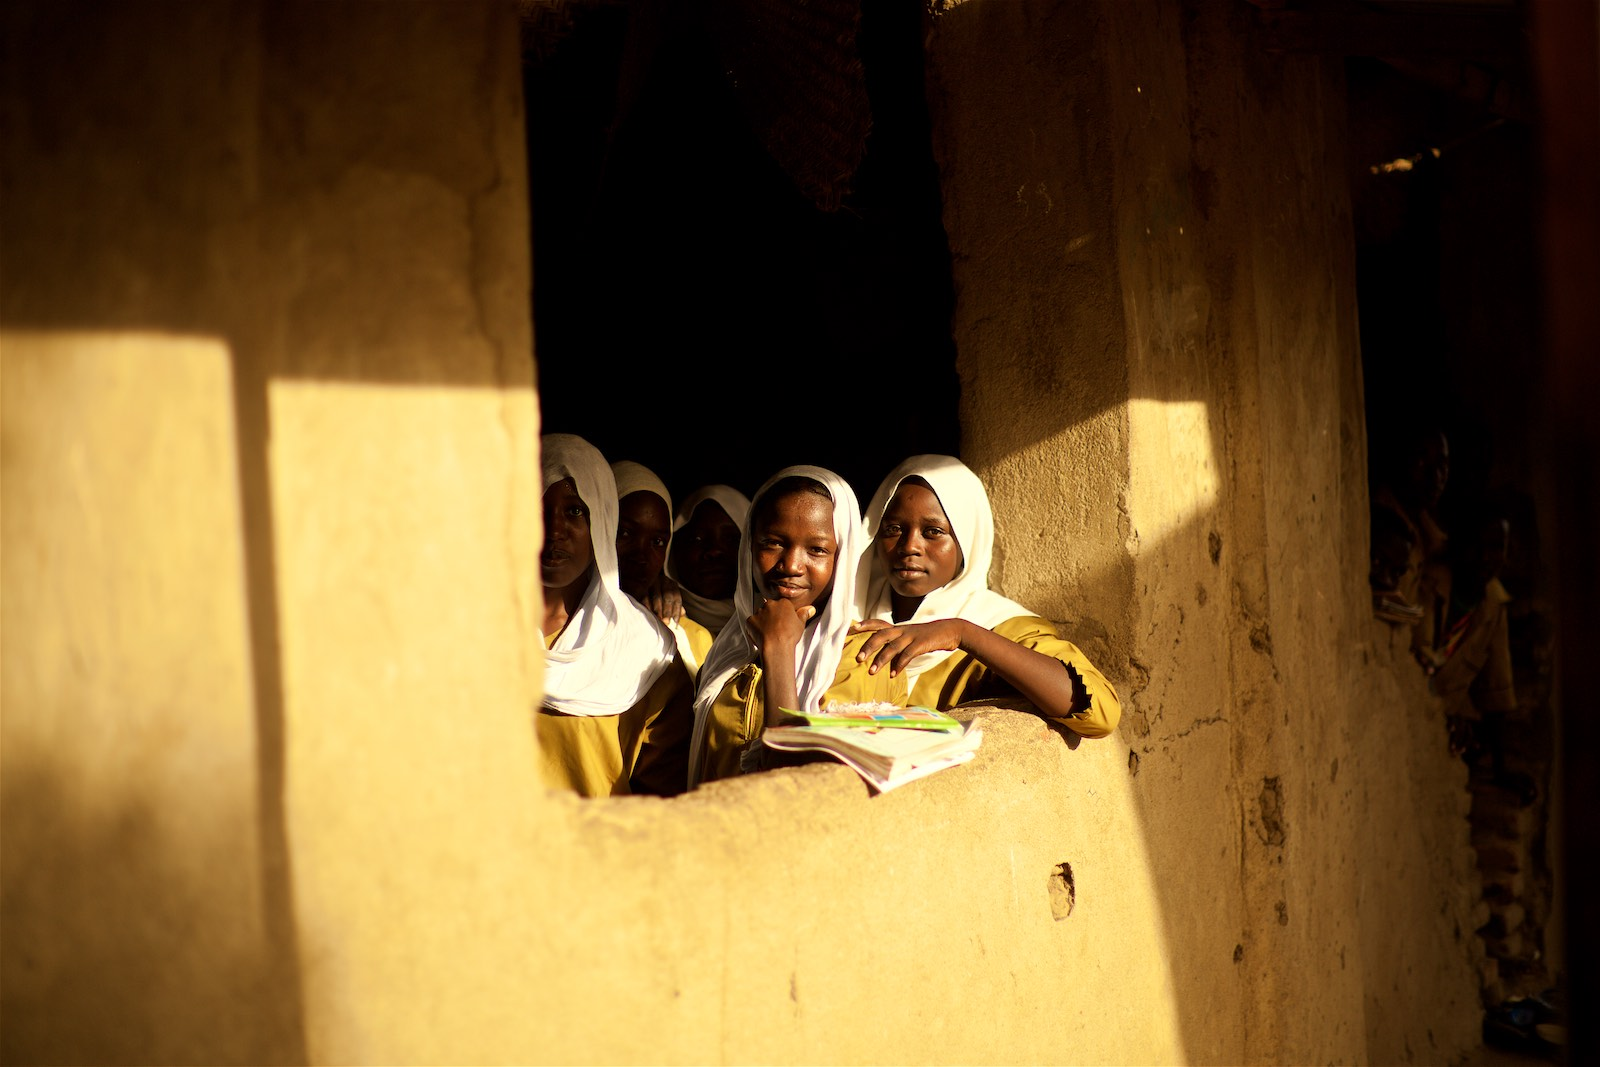 denis-bosnic-chad-school-jrs-jesuit-refugee-service-students-education-mercy-in-motion-34.jpg